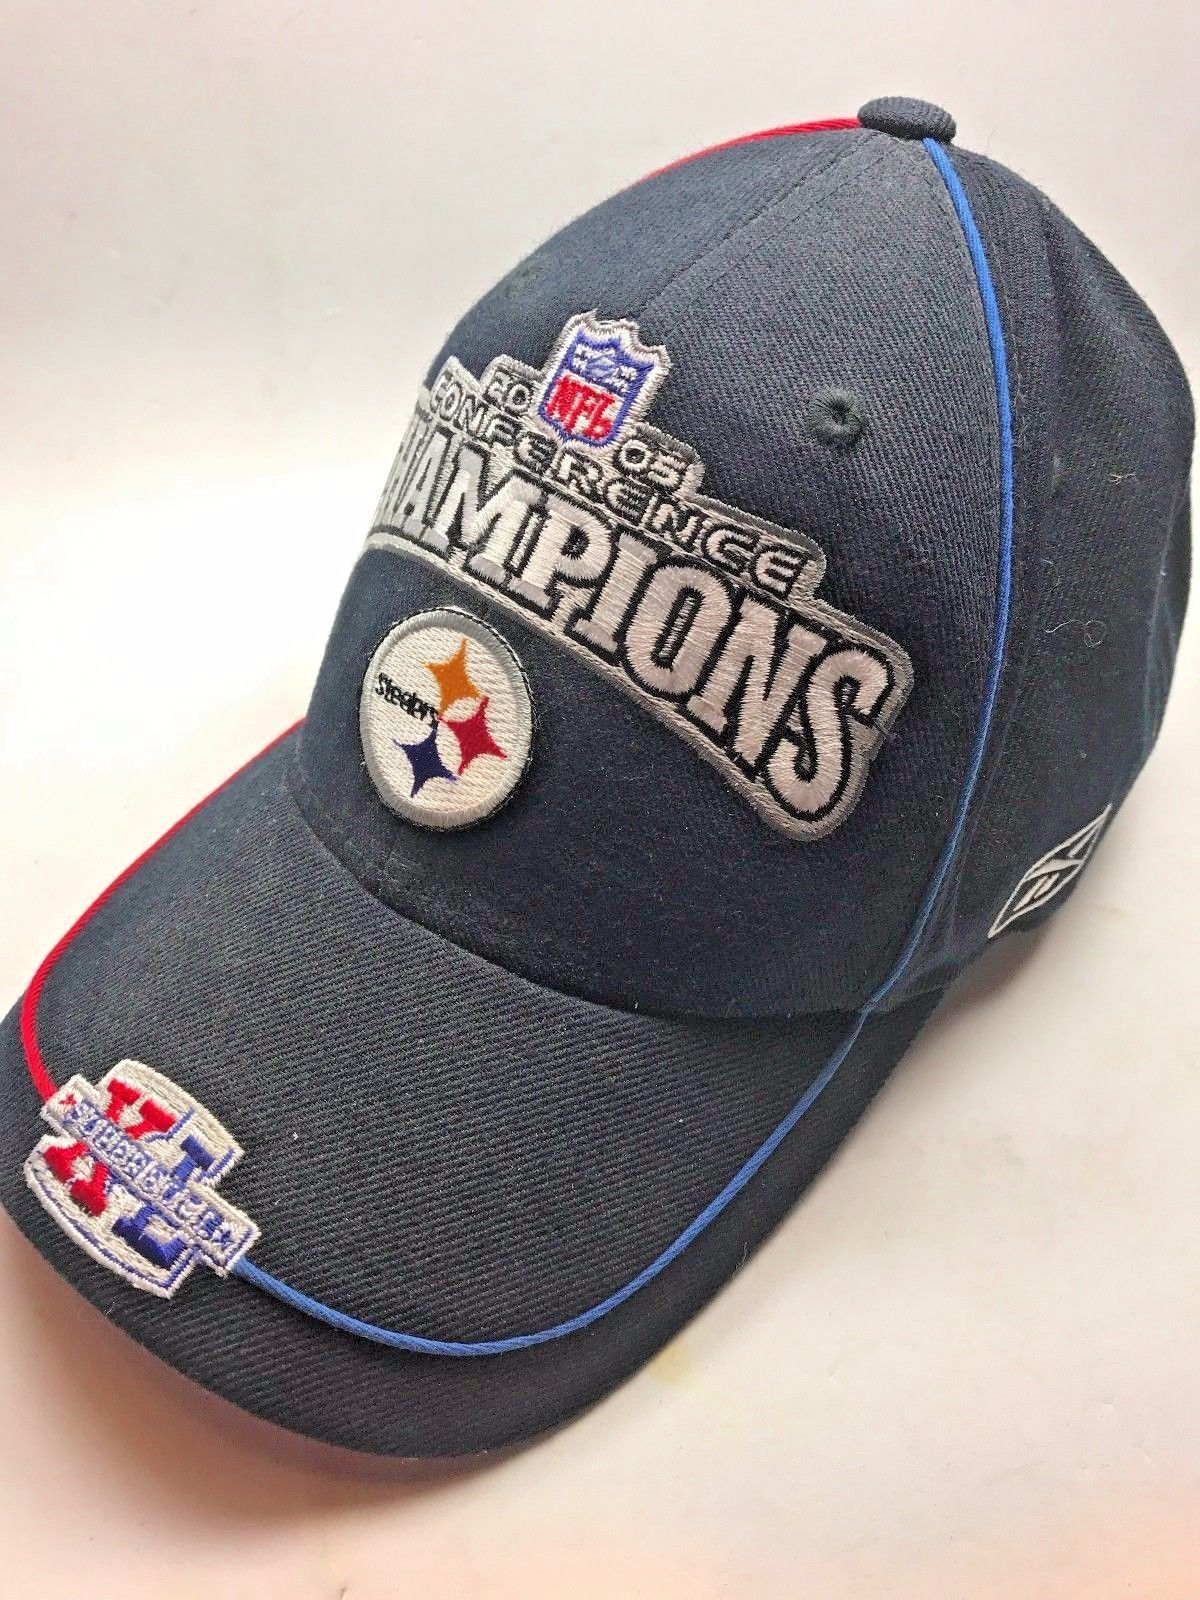 S l1600. S l1600. Reebok 2005 NFL Pittsburgh Steelers 2005 Conference  Champions Baseball Hat ... 93d4439e9